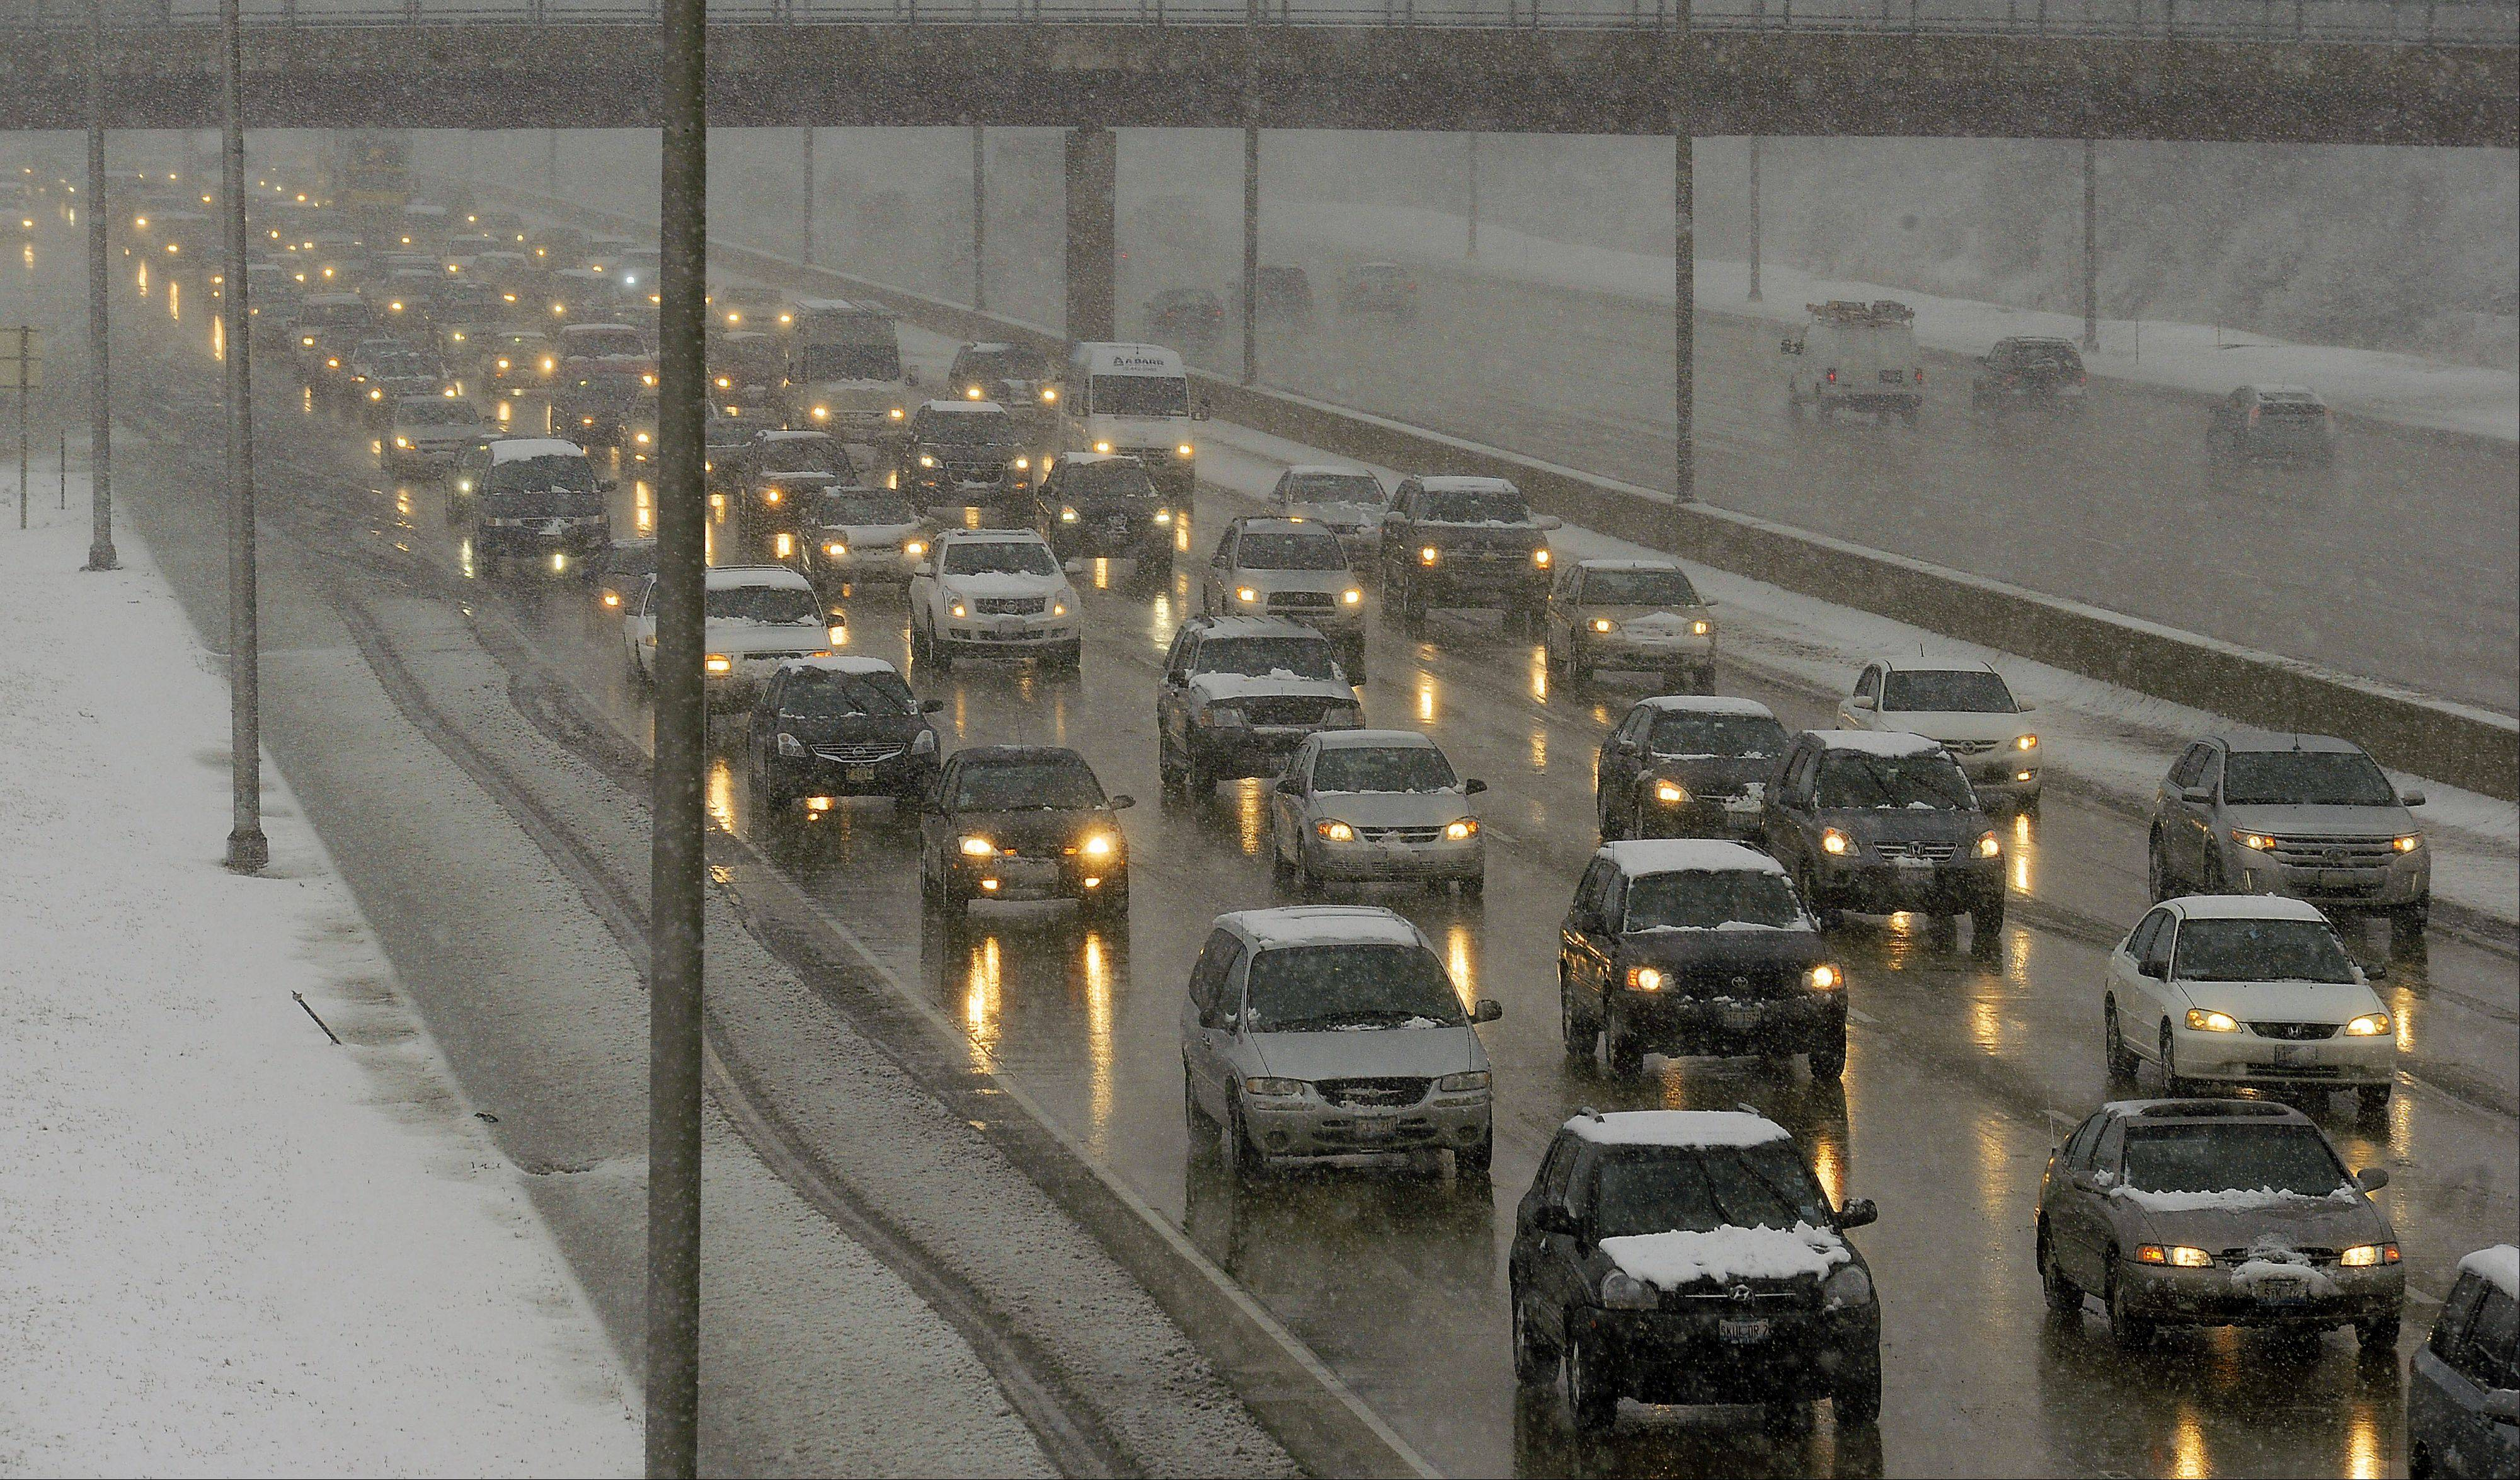 Tuesday's snow didn't stop cars from moving along I-290, where commuting times weren't as bad as expected.